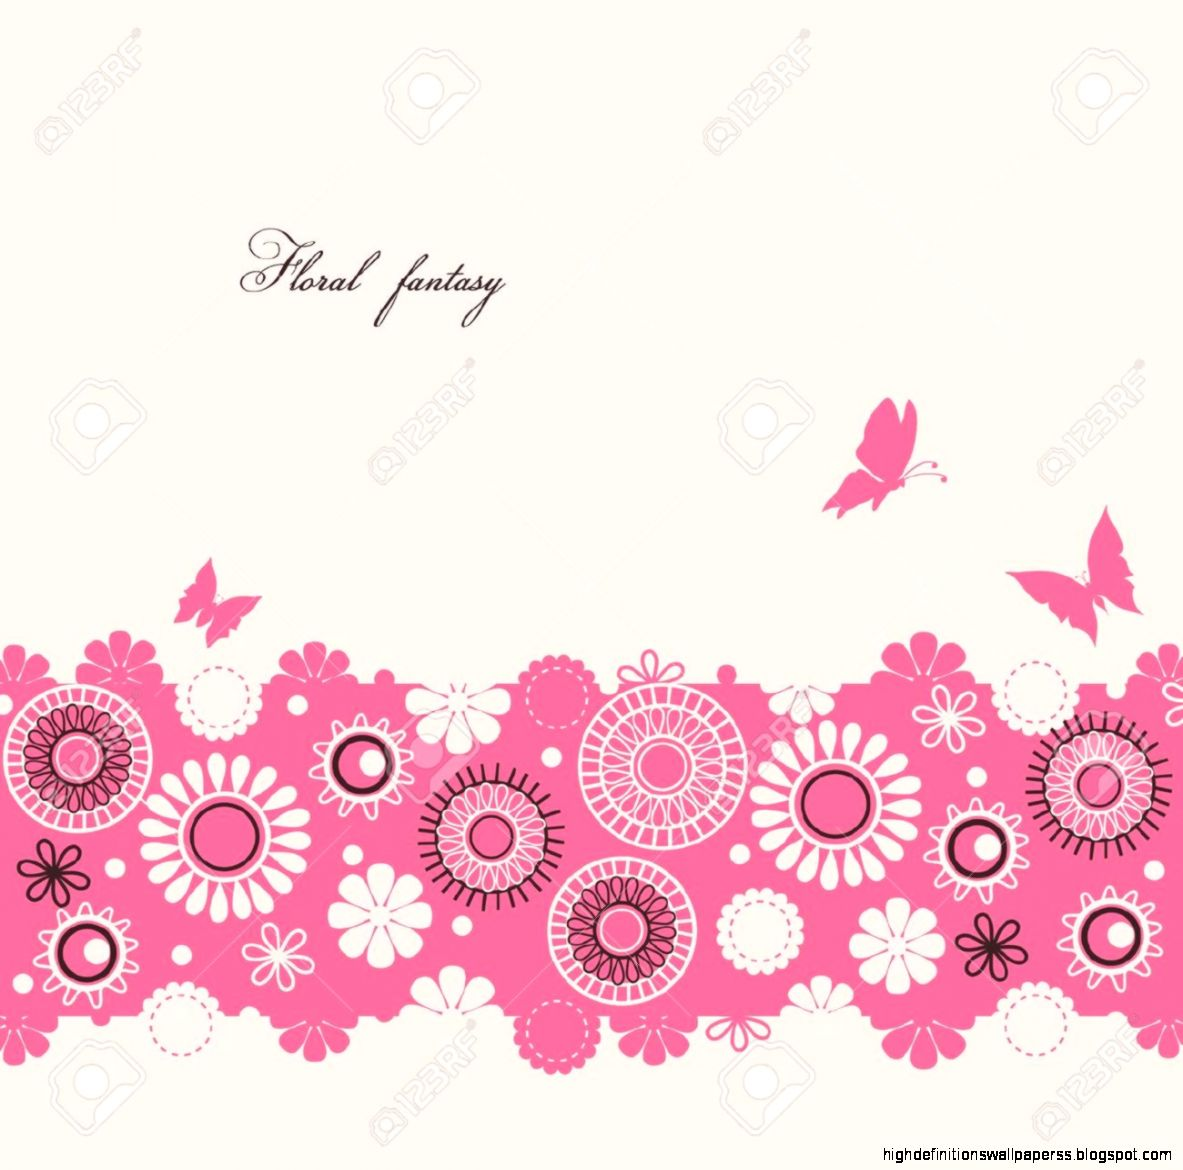 Pink butterfly vector background hd wallpapers pink butterfly vector - Pink Butterfly Vector Background Hd Wallpapers Pink Butterfly Vector 42